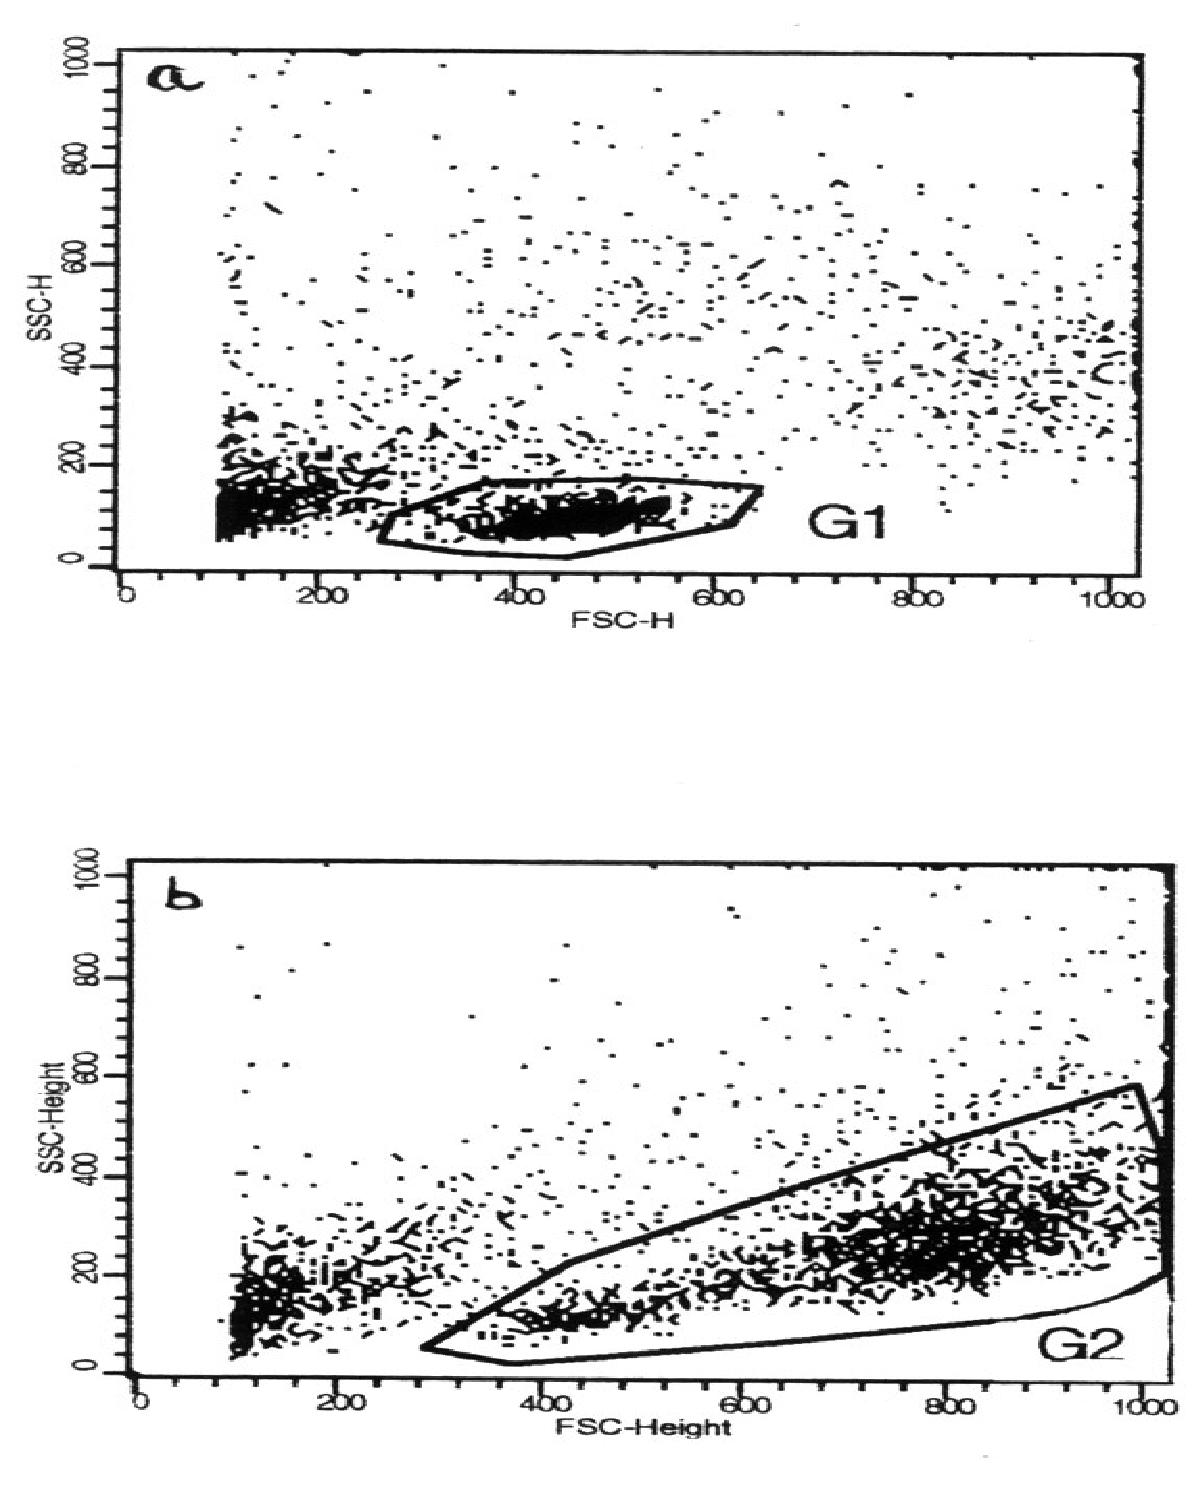 https://static-content.springer.com/image/art%3A10.1186%2F1471-2172-3-9/MediaObjects/12865_2002_Article_21_Fig1_HTML.jpg